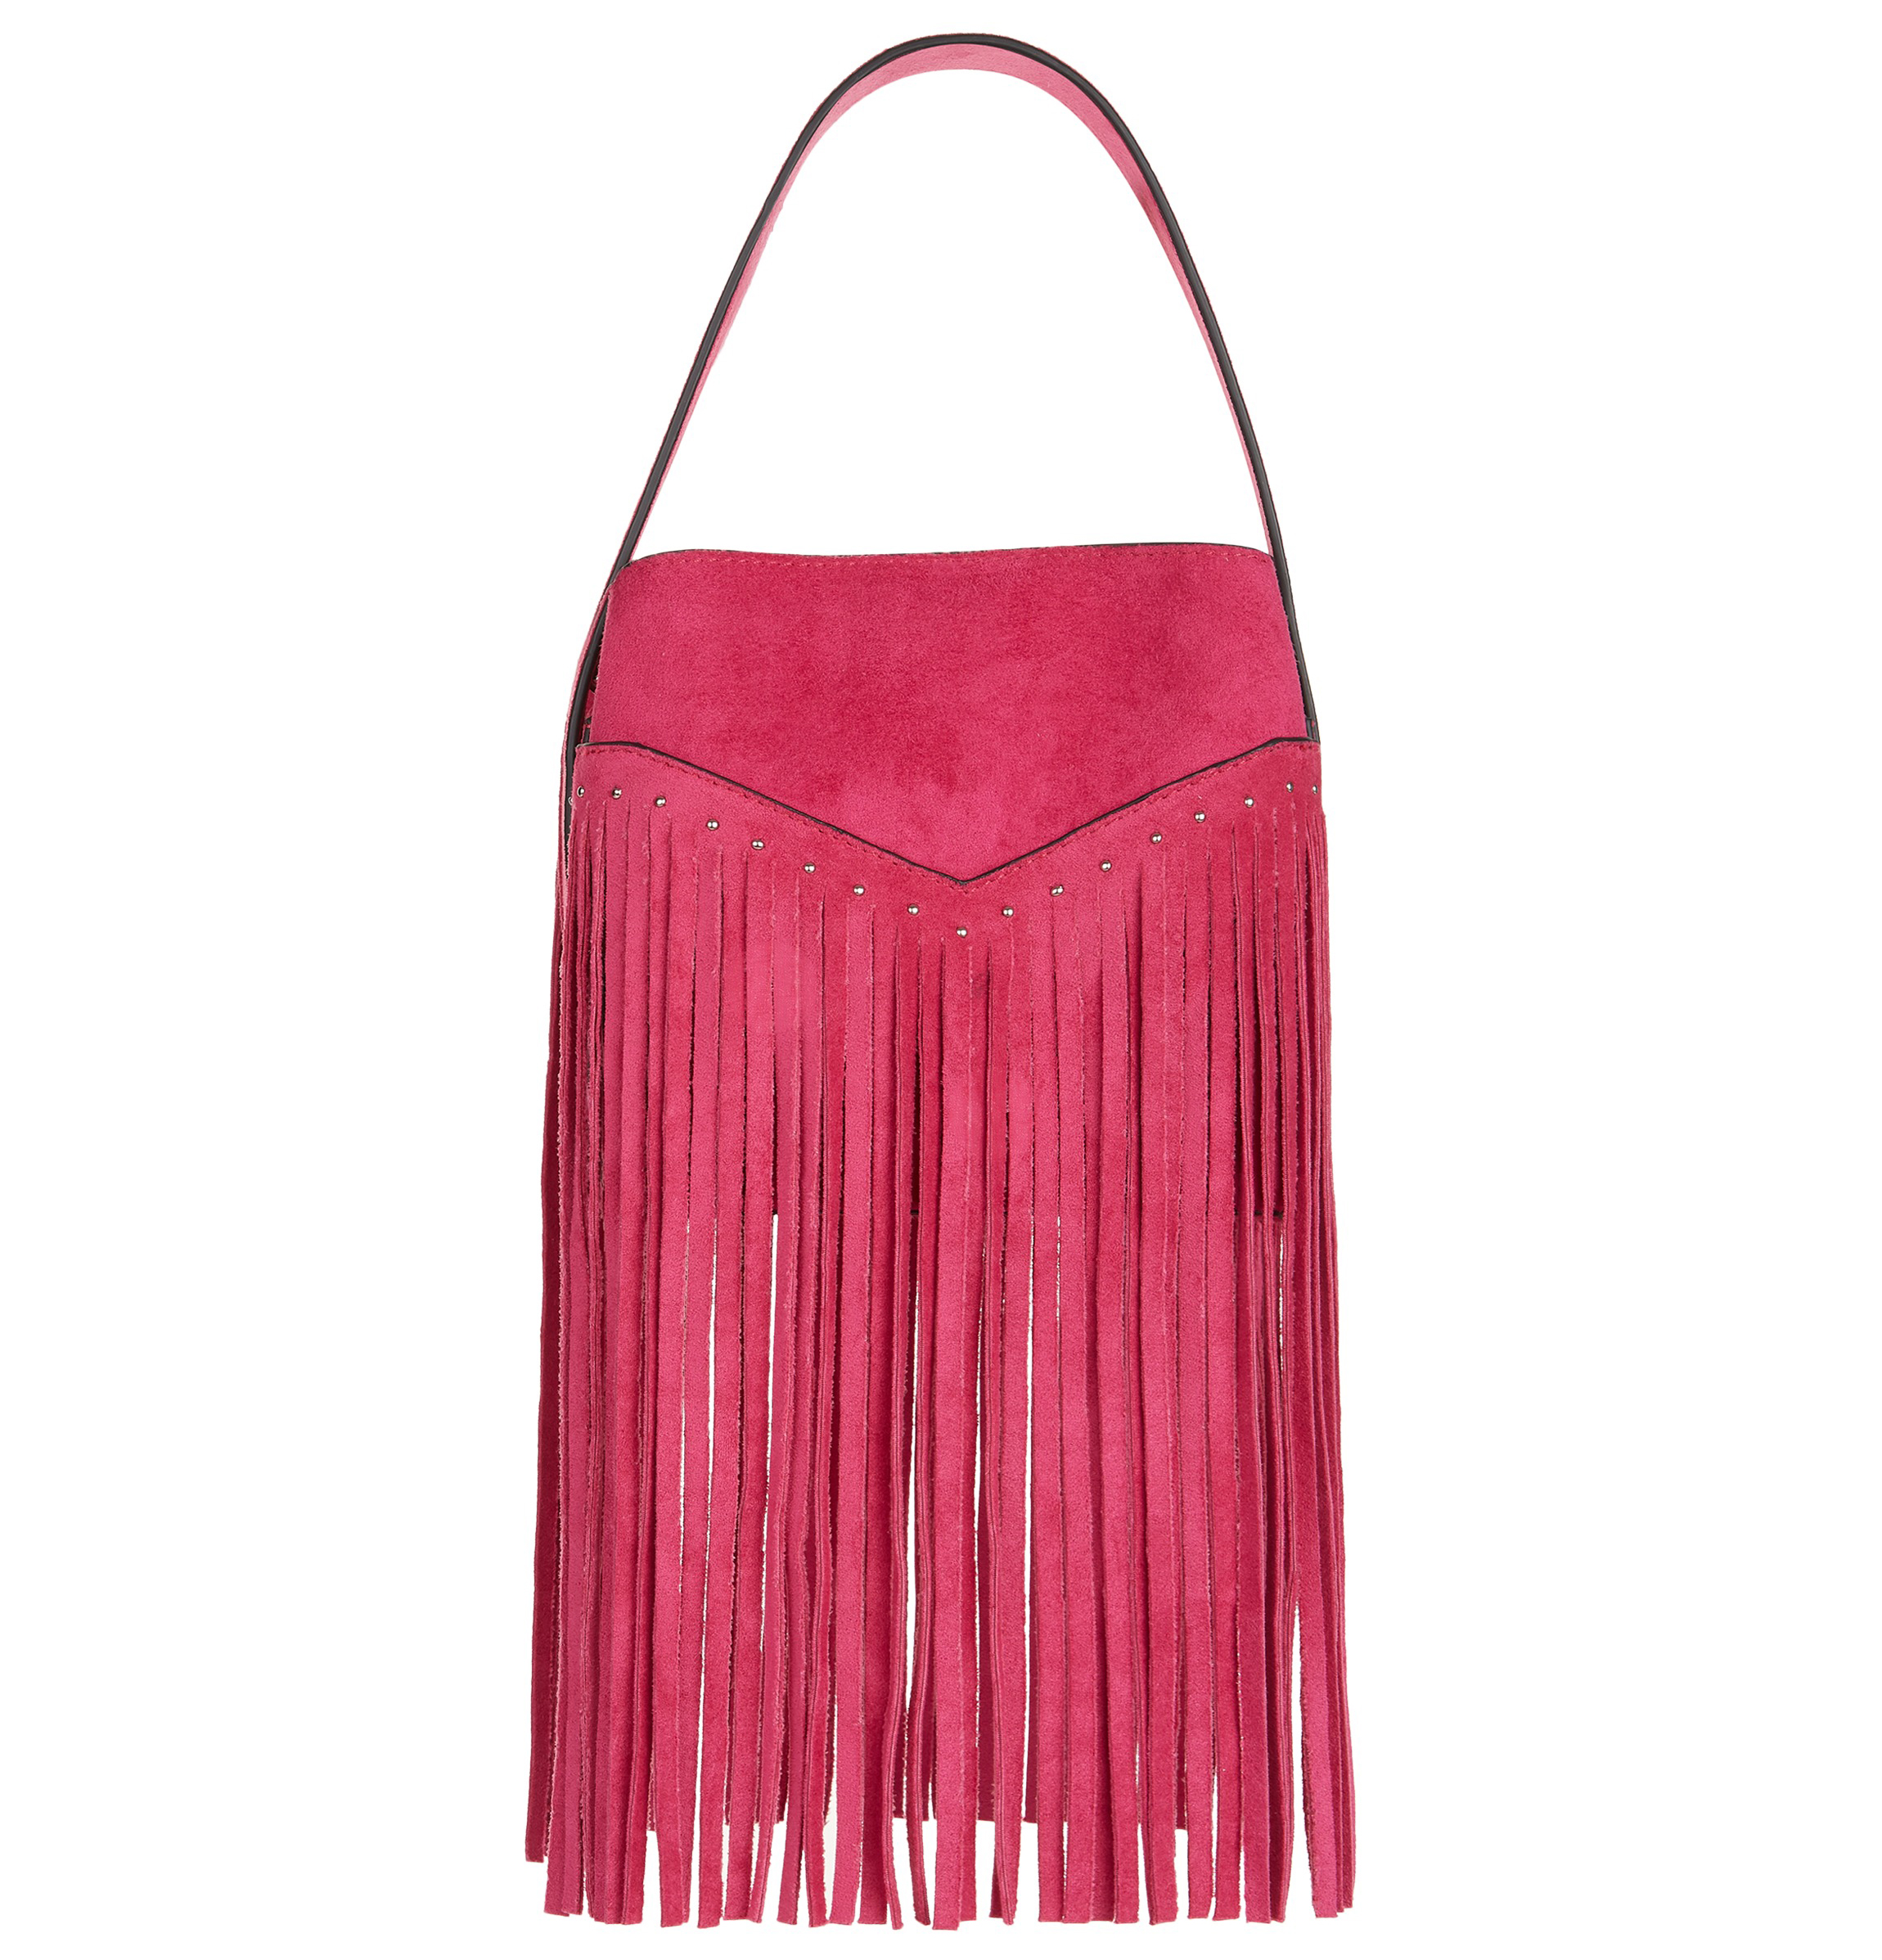 New Look Pink Suede Fringe Bag